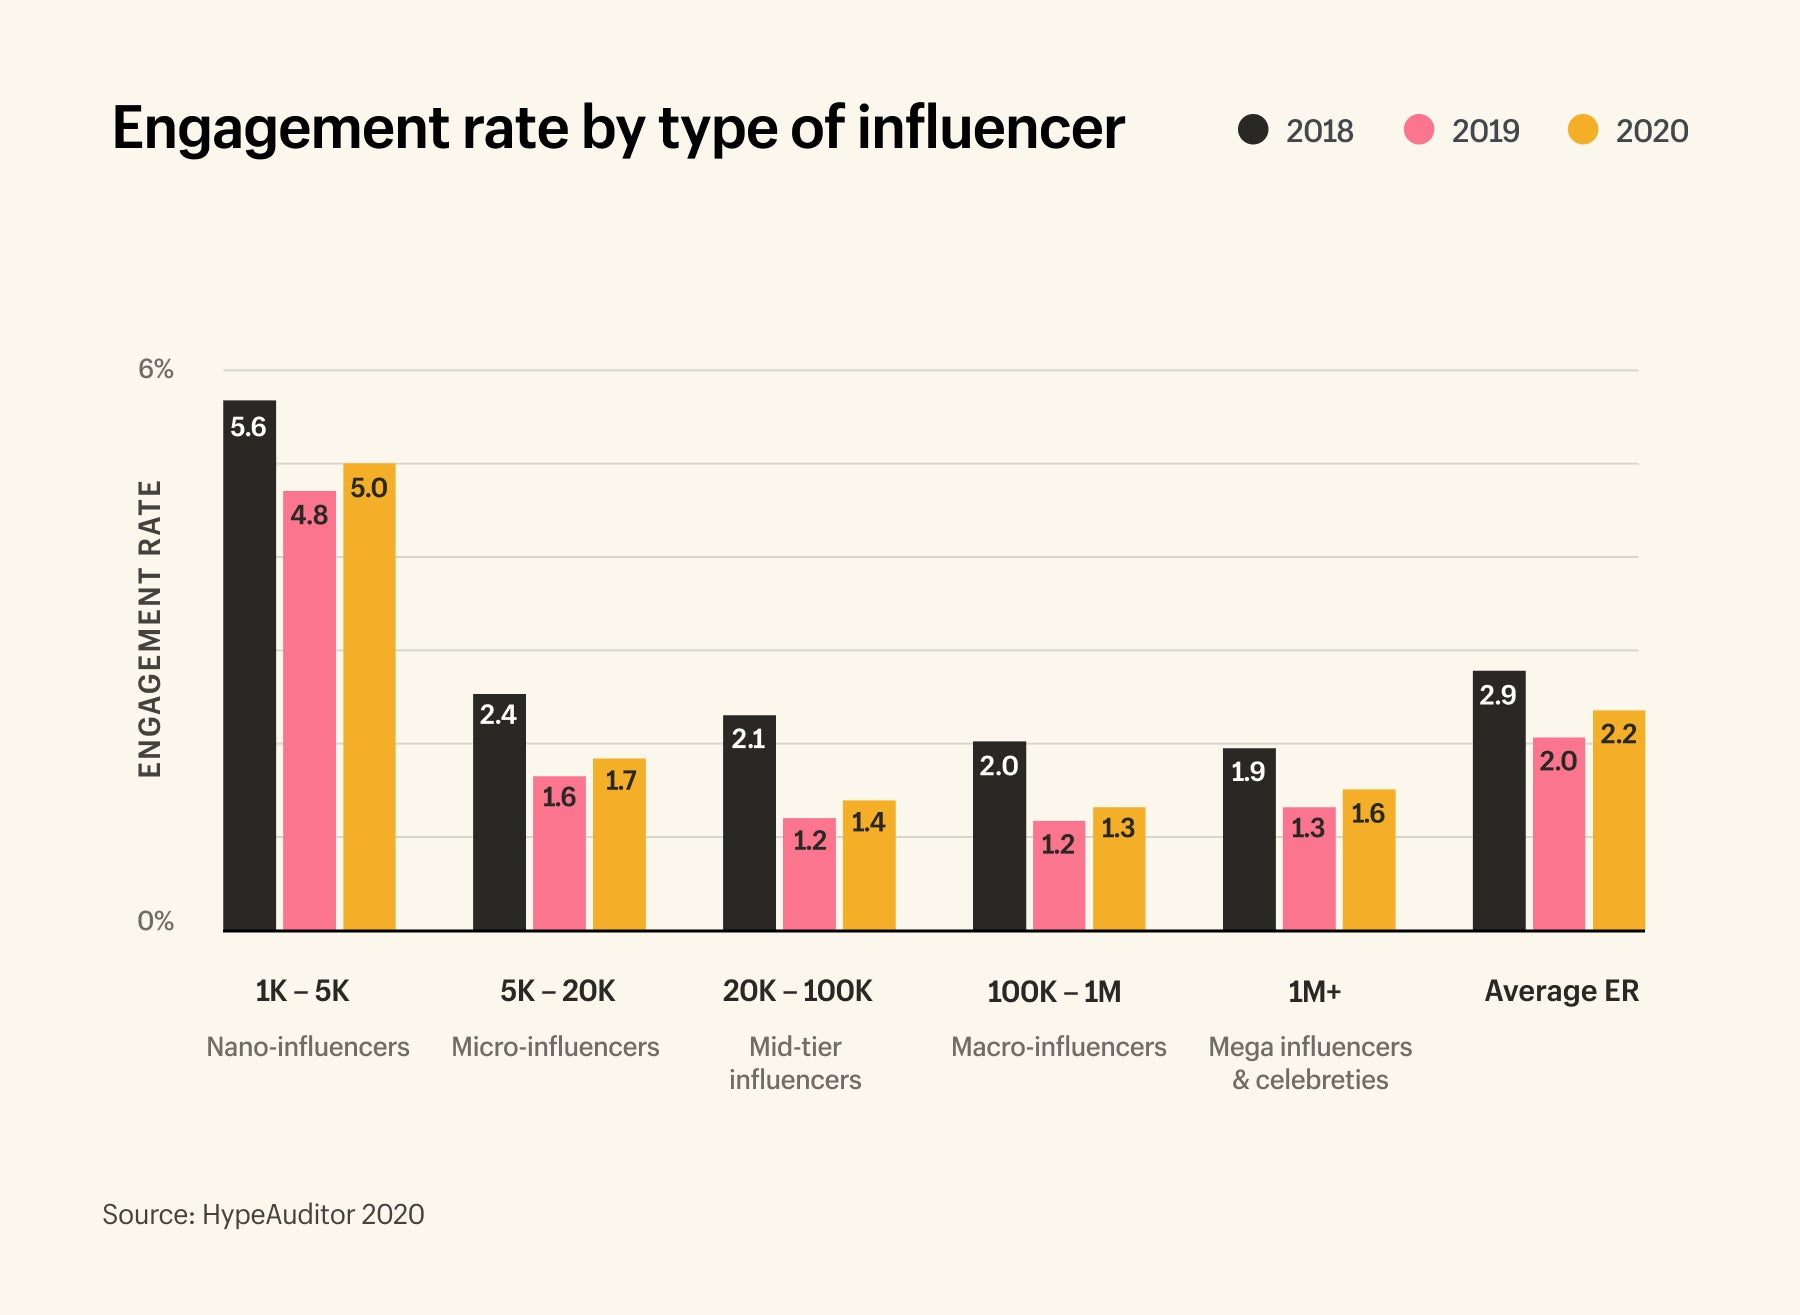 Nano influencers have the highest engagement rate at 5%